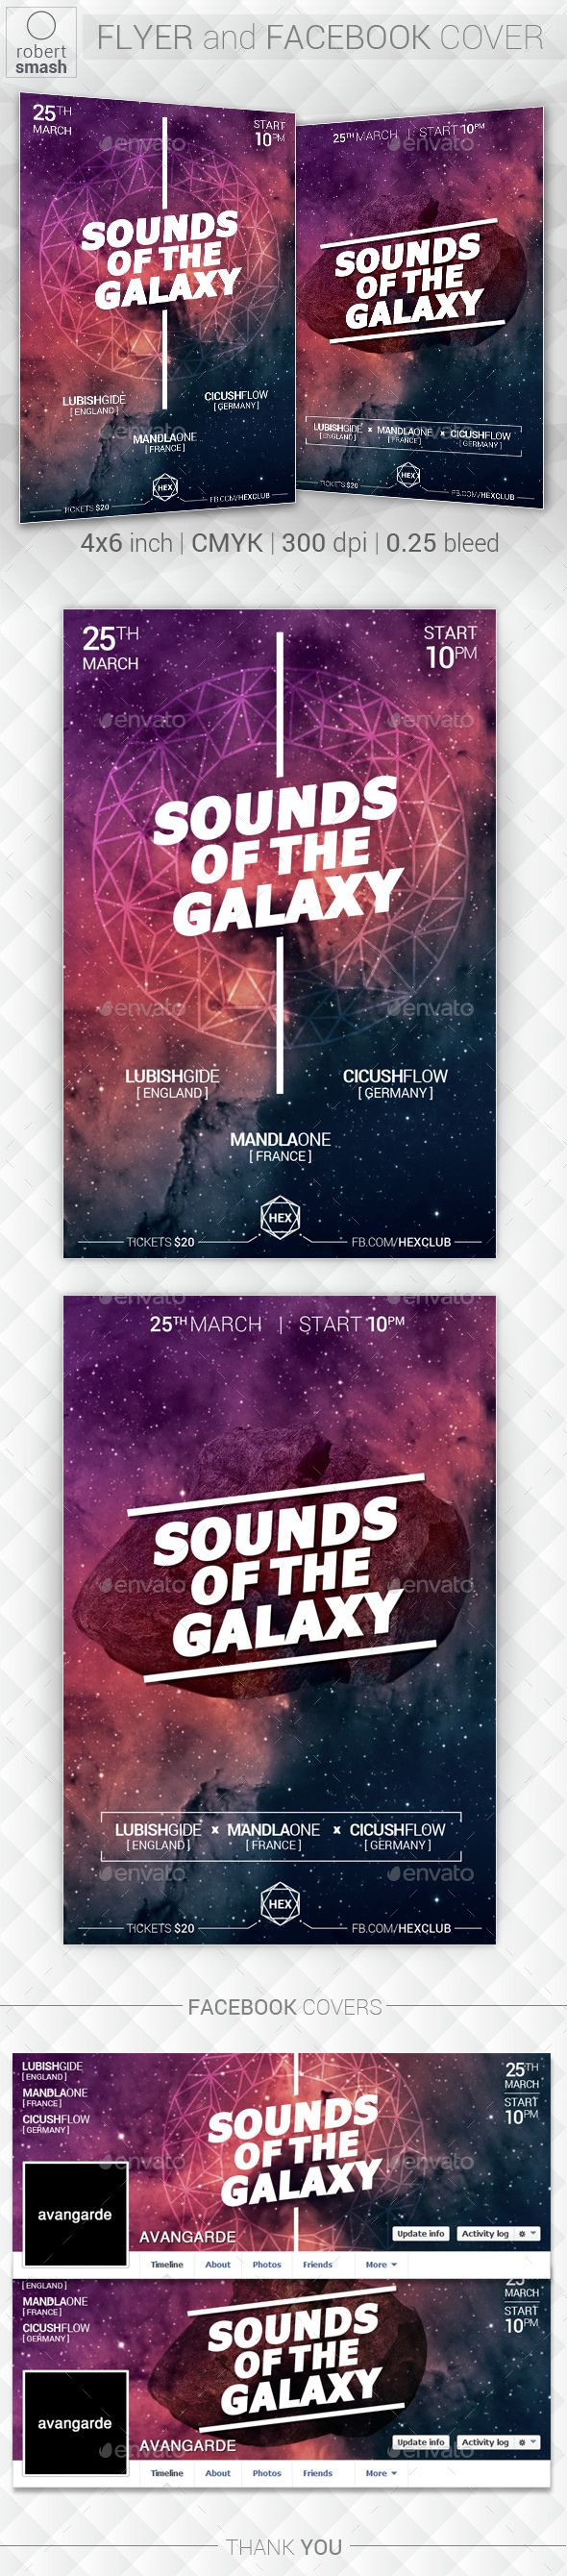 Galaxy Music Flyer  Music Flyer Flyer Template And Graphics